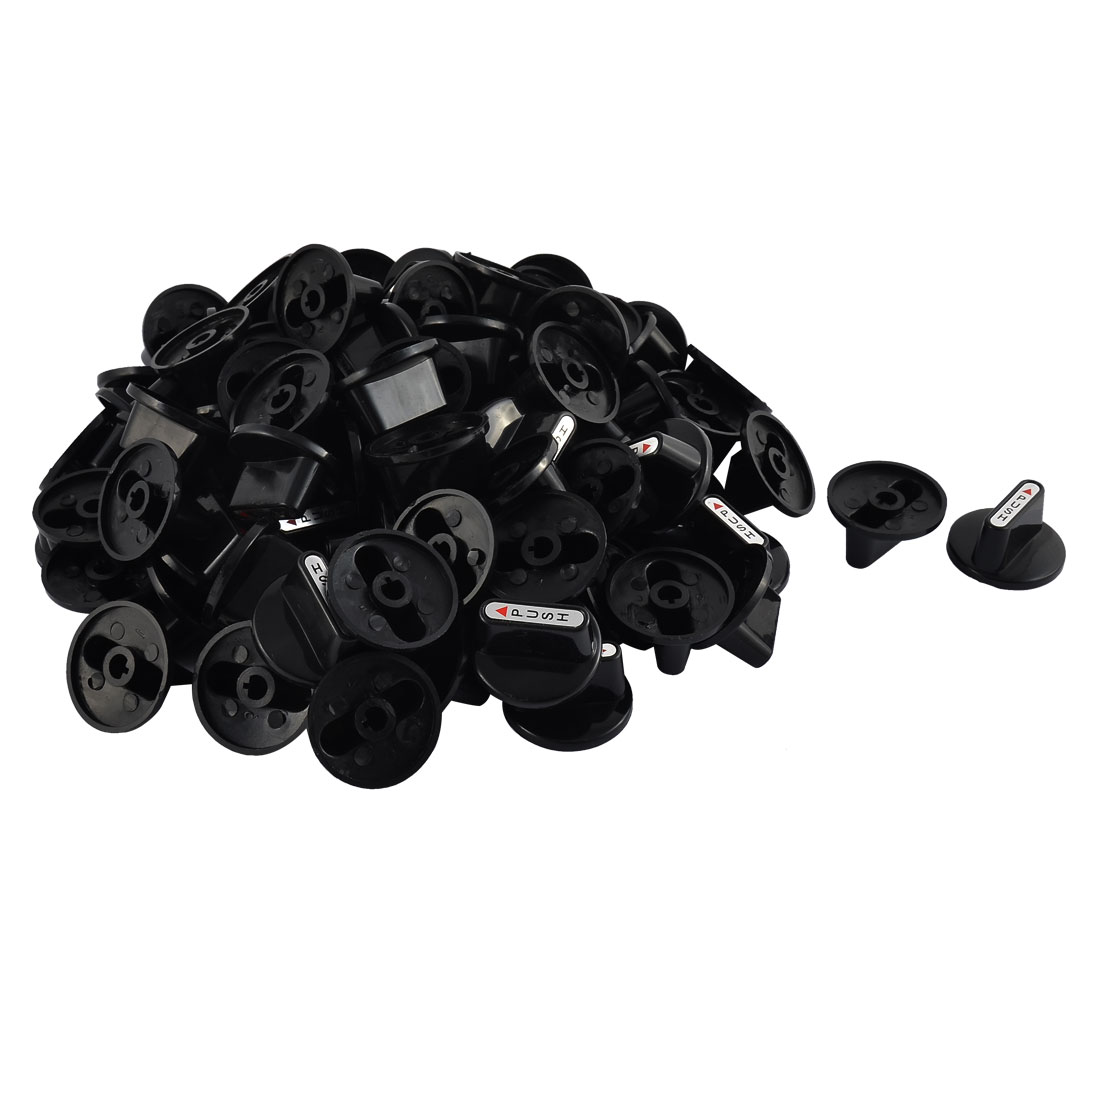 Kitchenware Gas Stove Cooker Plastic Rotary Switch Range Handle Knob Black 100pcs